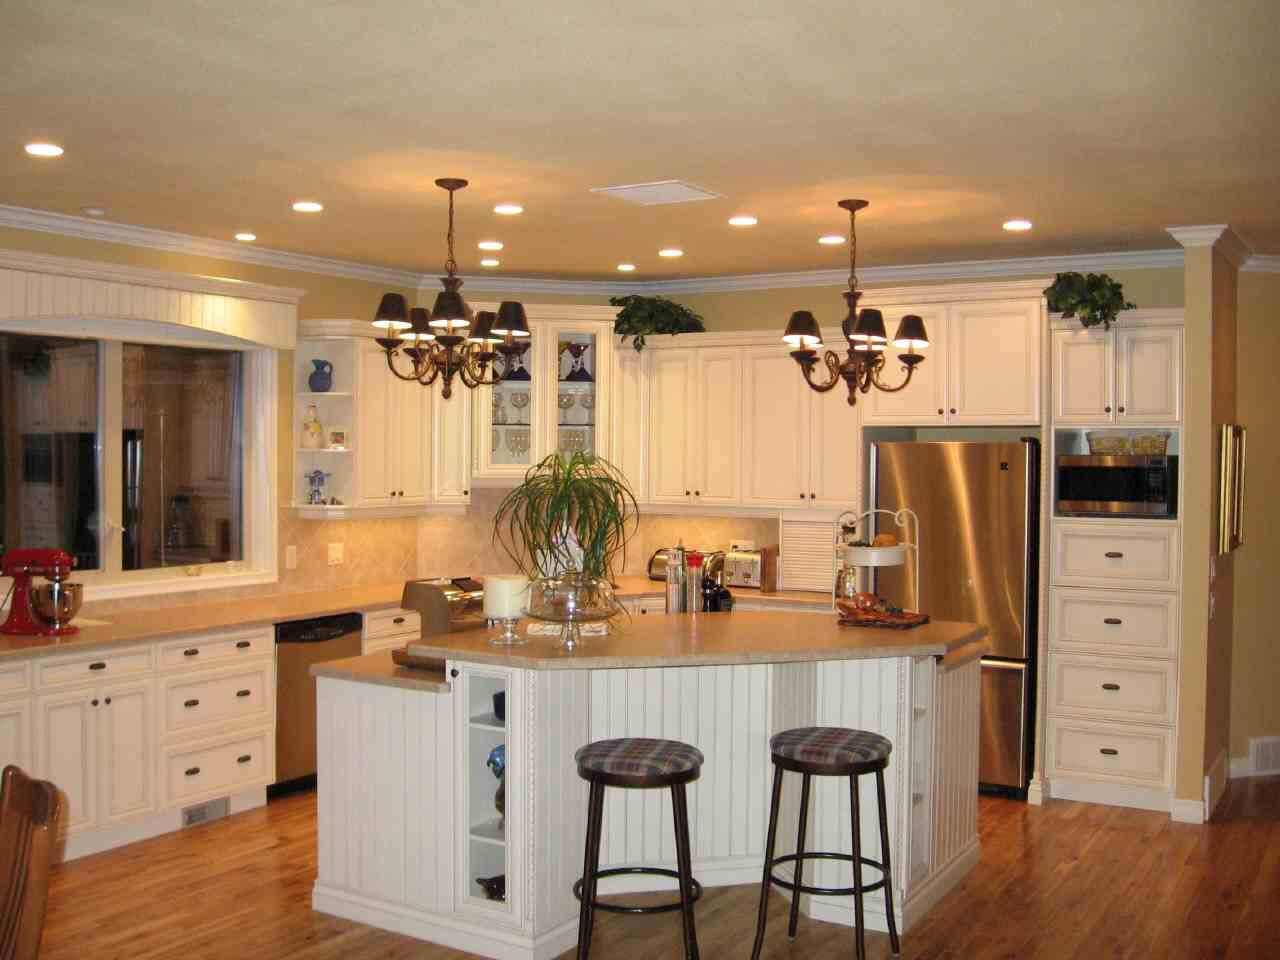 Kitchen Island Design Ideas For Small Kitchens  Dream Kitchens Awesome Small Kitchen Island Design Ideas Inspiration